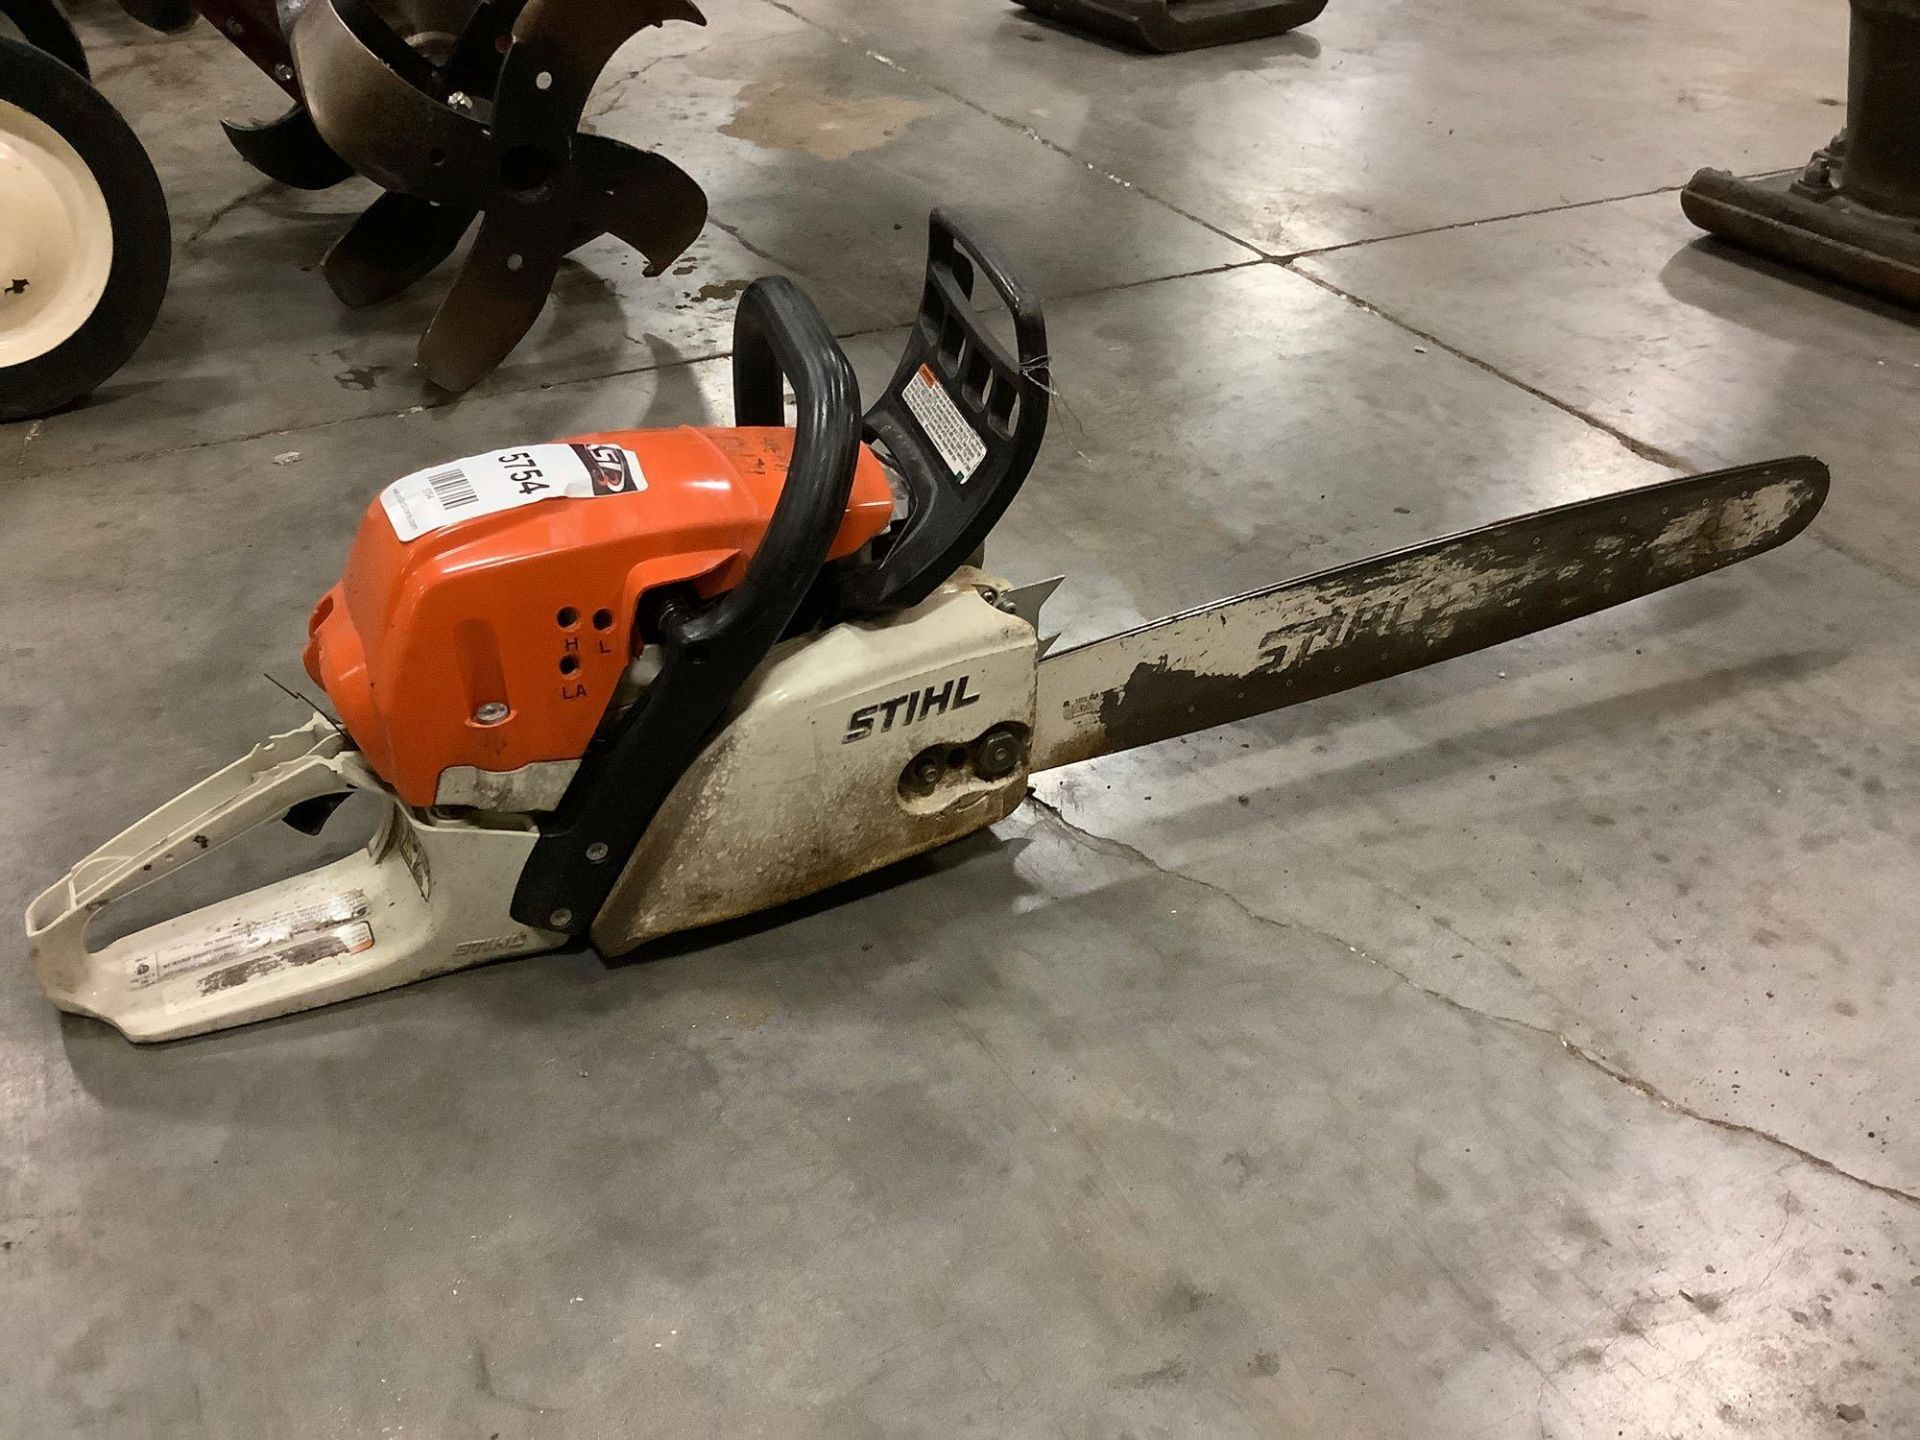 2017 STIHL CHAIN SAW MODEL MS291 MISSING CHAIN & HANDLE IS BROKEN